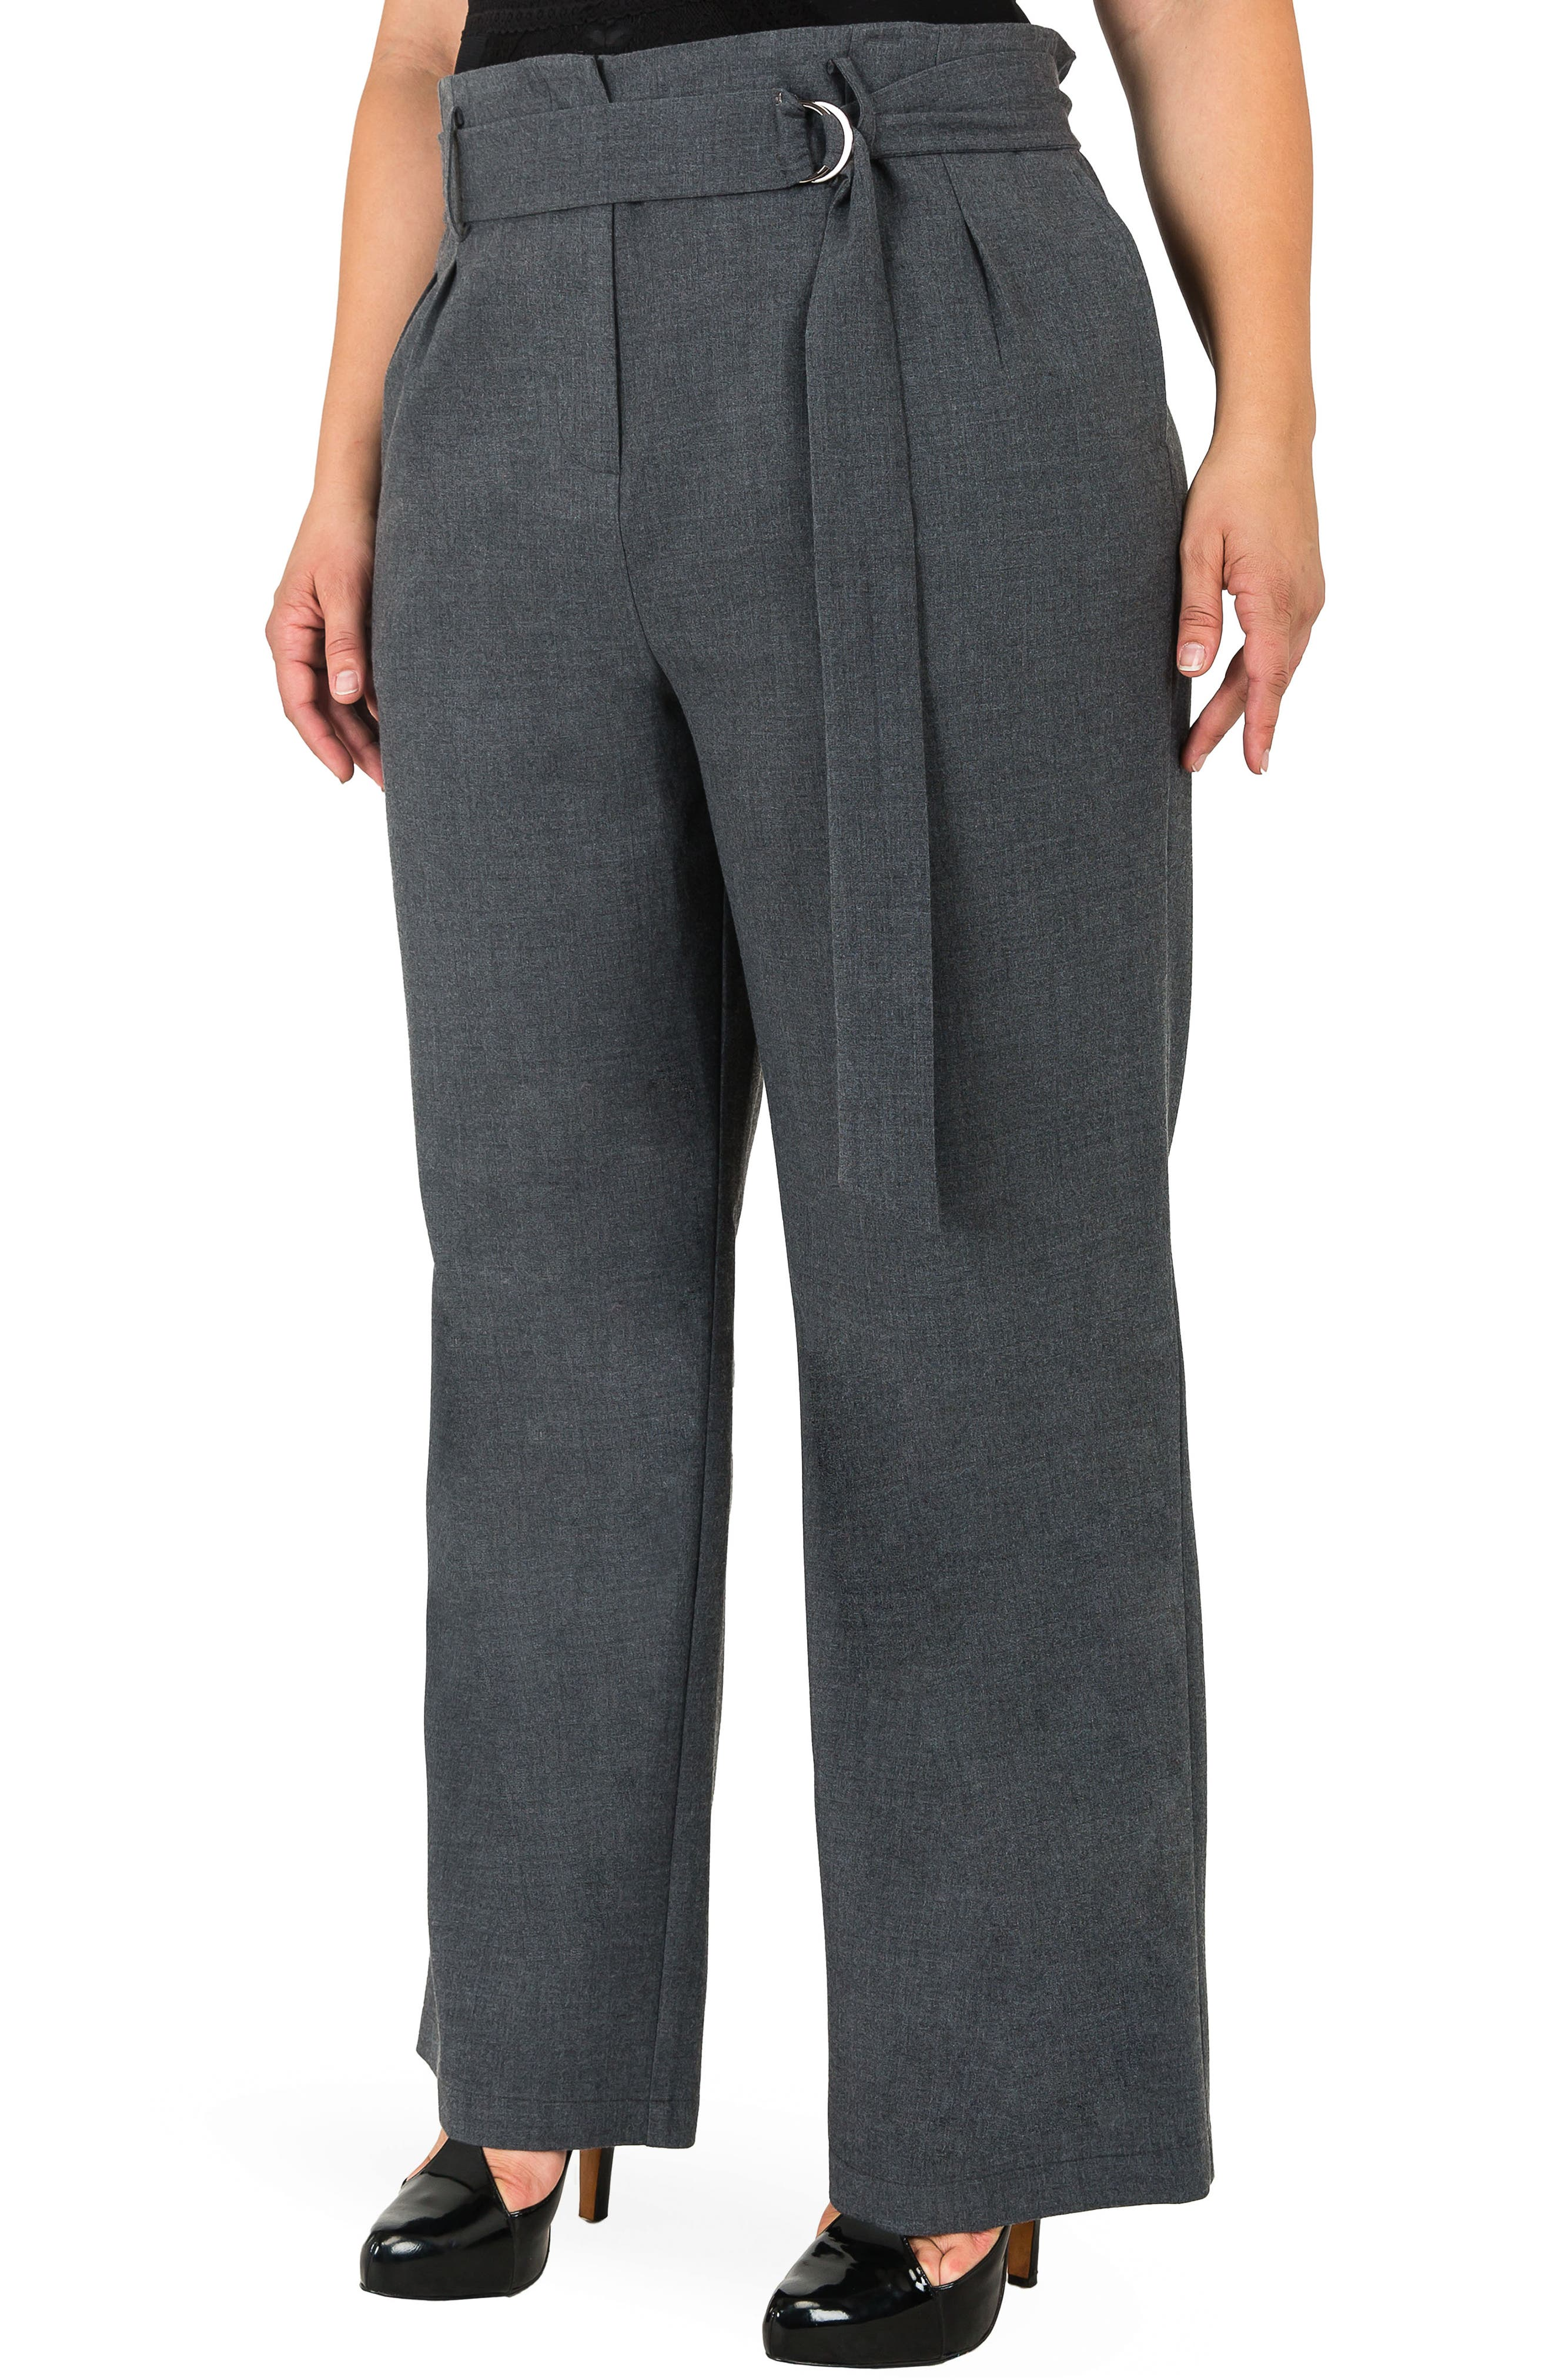 Franchesca High Rise Paperbag Trousers,                             Alternate thumbnail 4, color,                             CHARCOAL